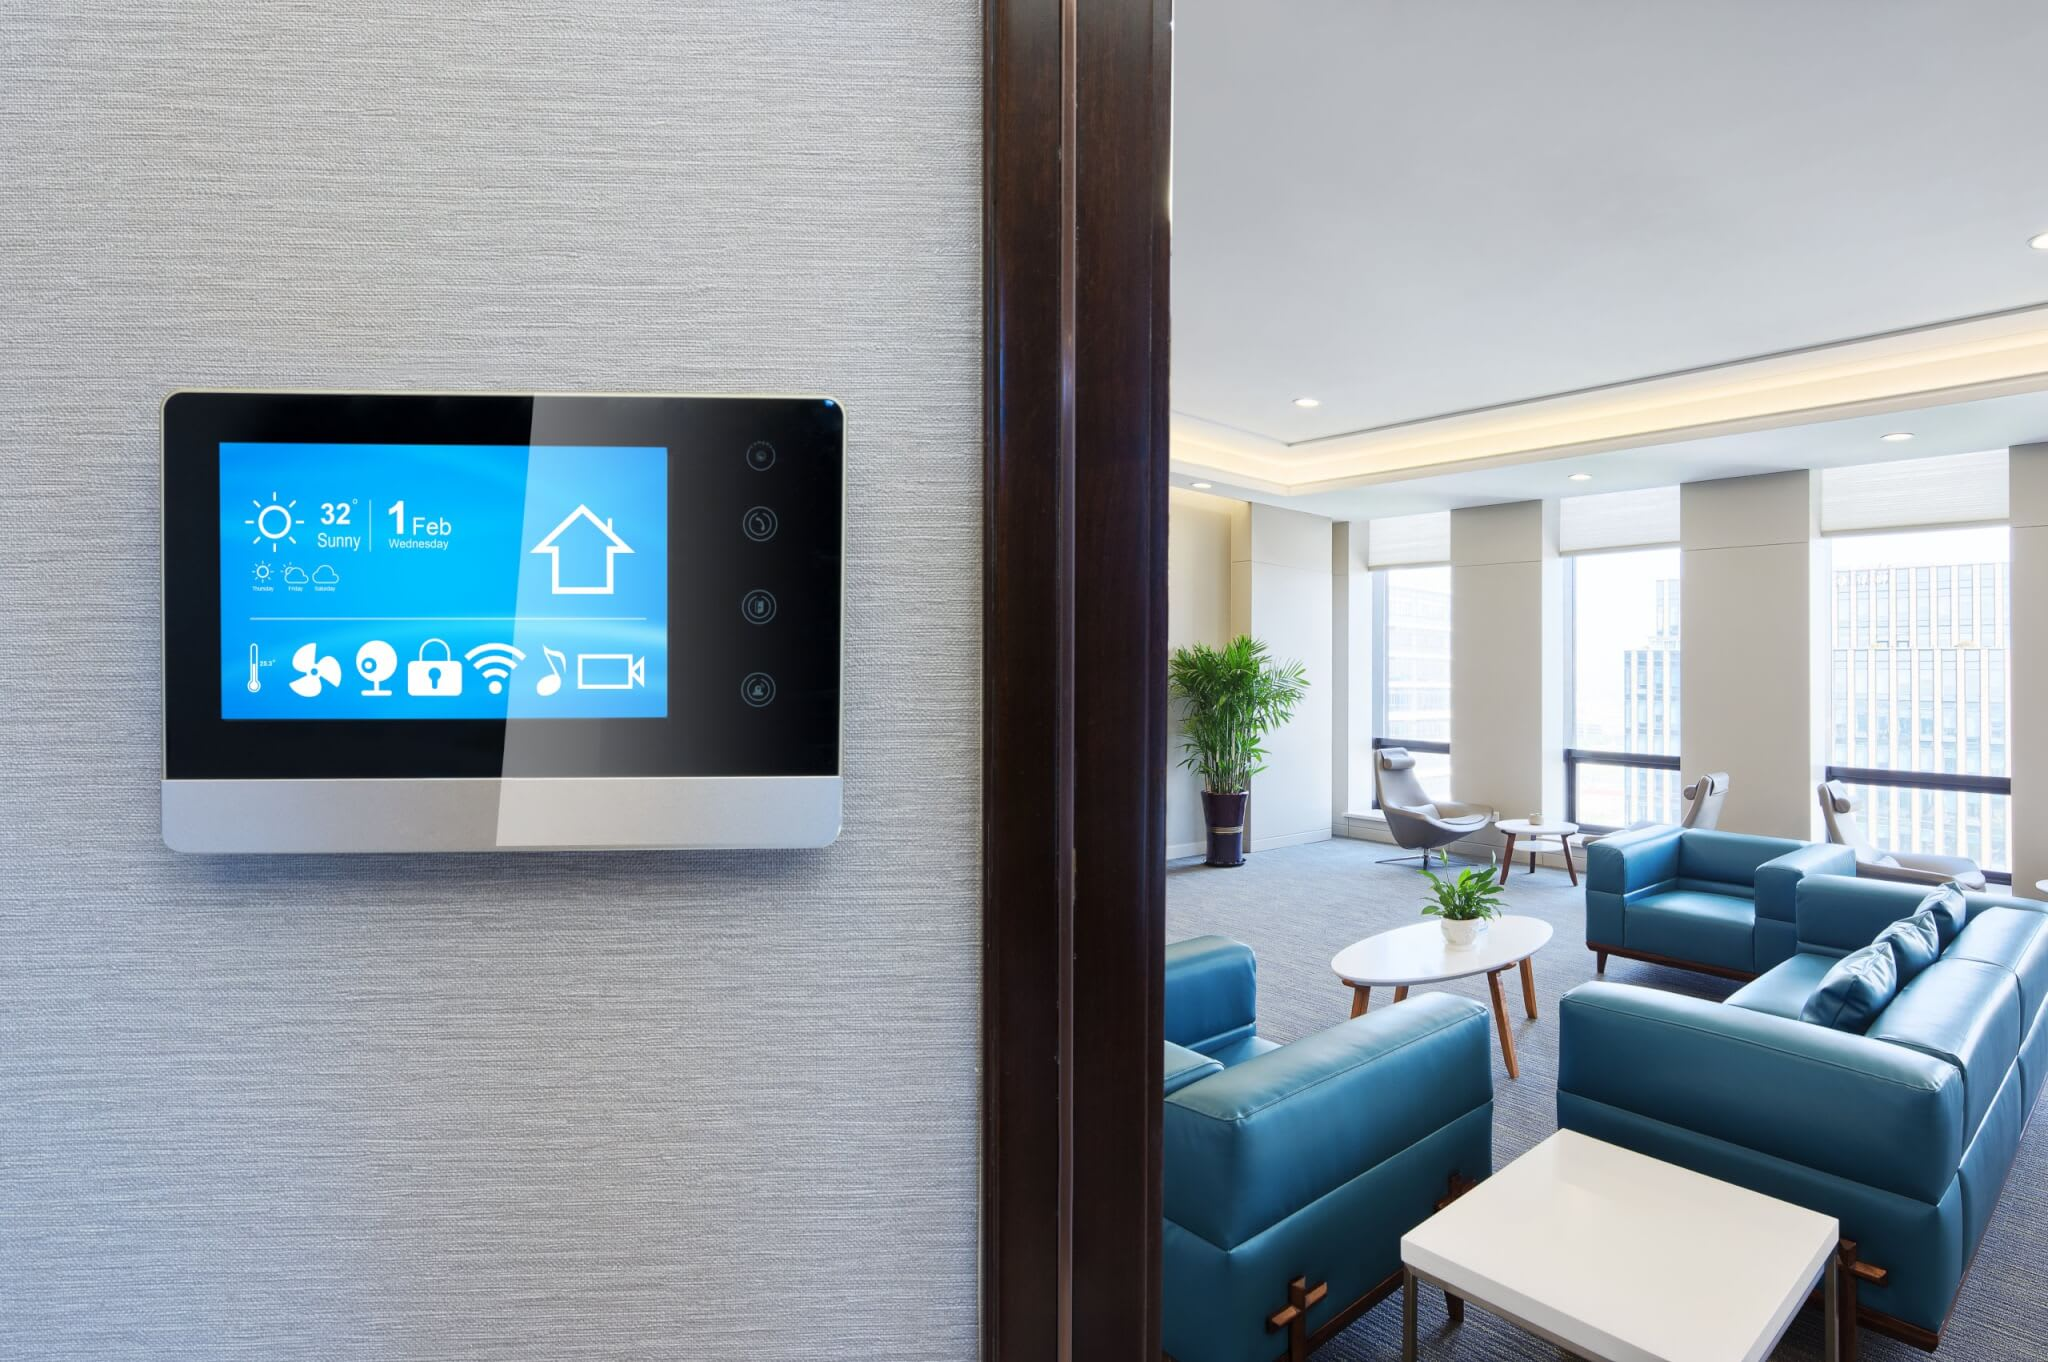 A smart thermostat is a great way to reduce energy and save on costs